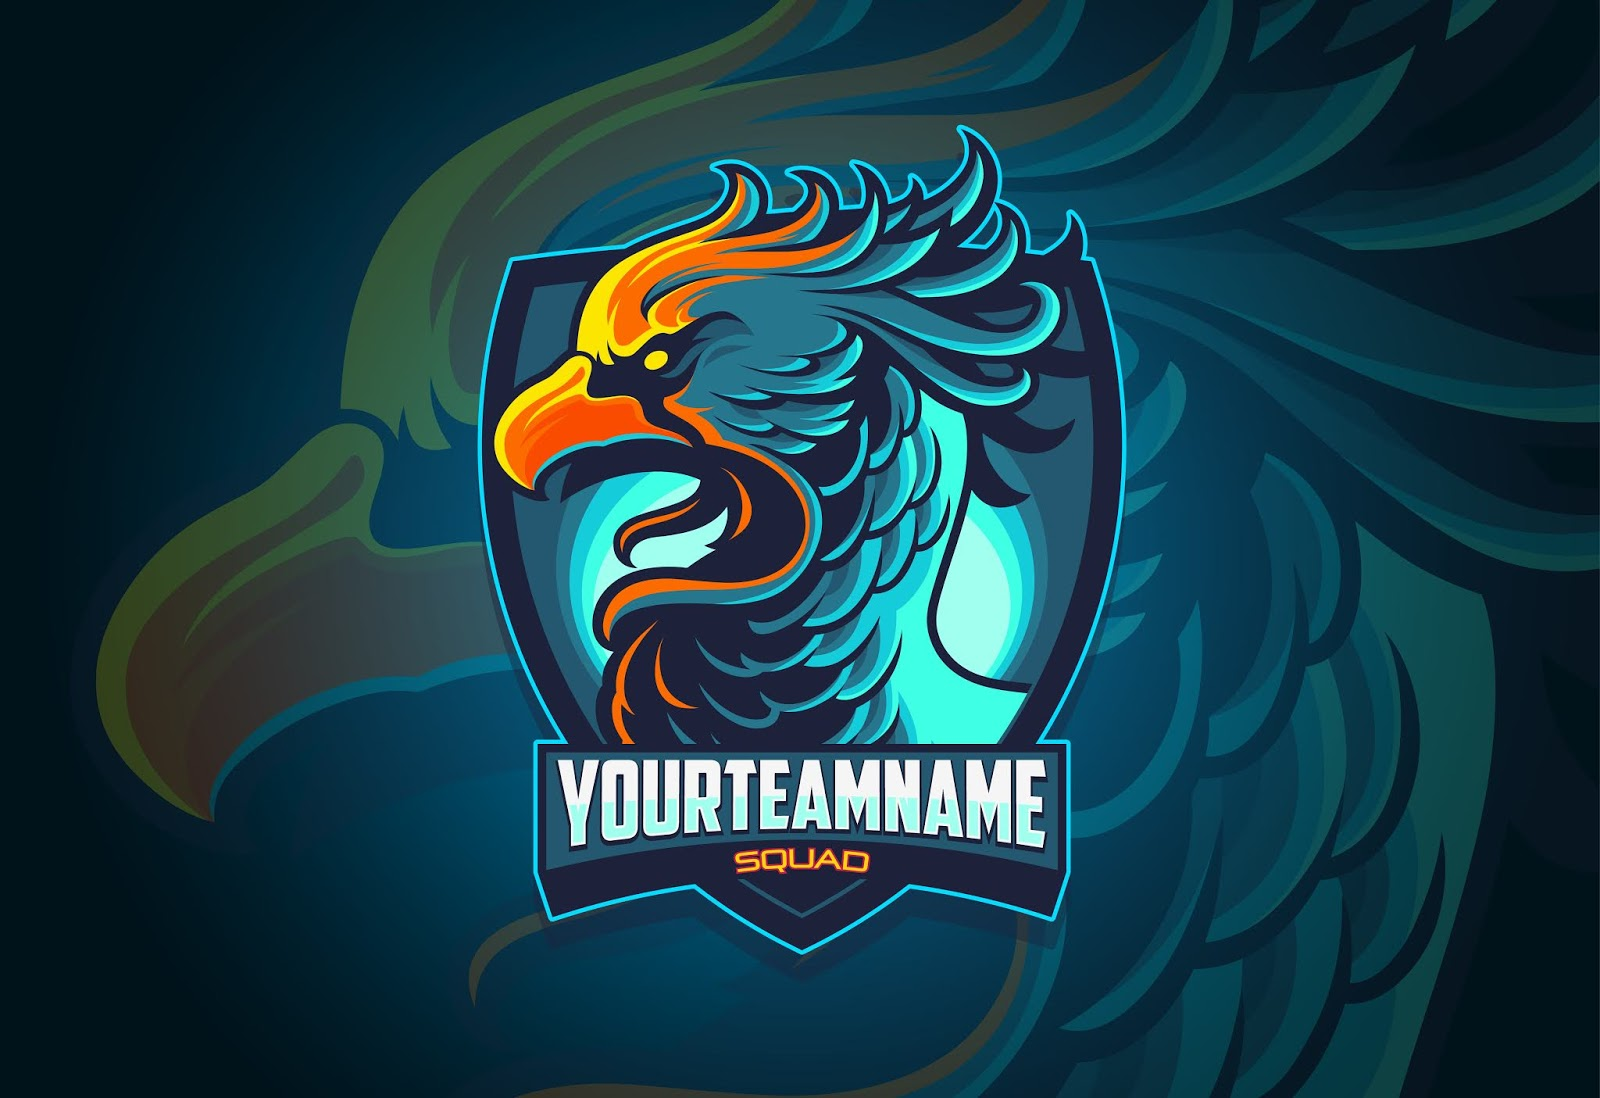 Phoenix Esports Logo Design Free Download Vector CDR, AI, EPS and PNG Formats